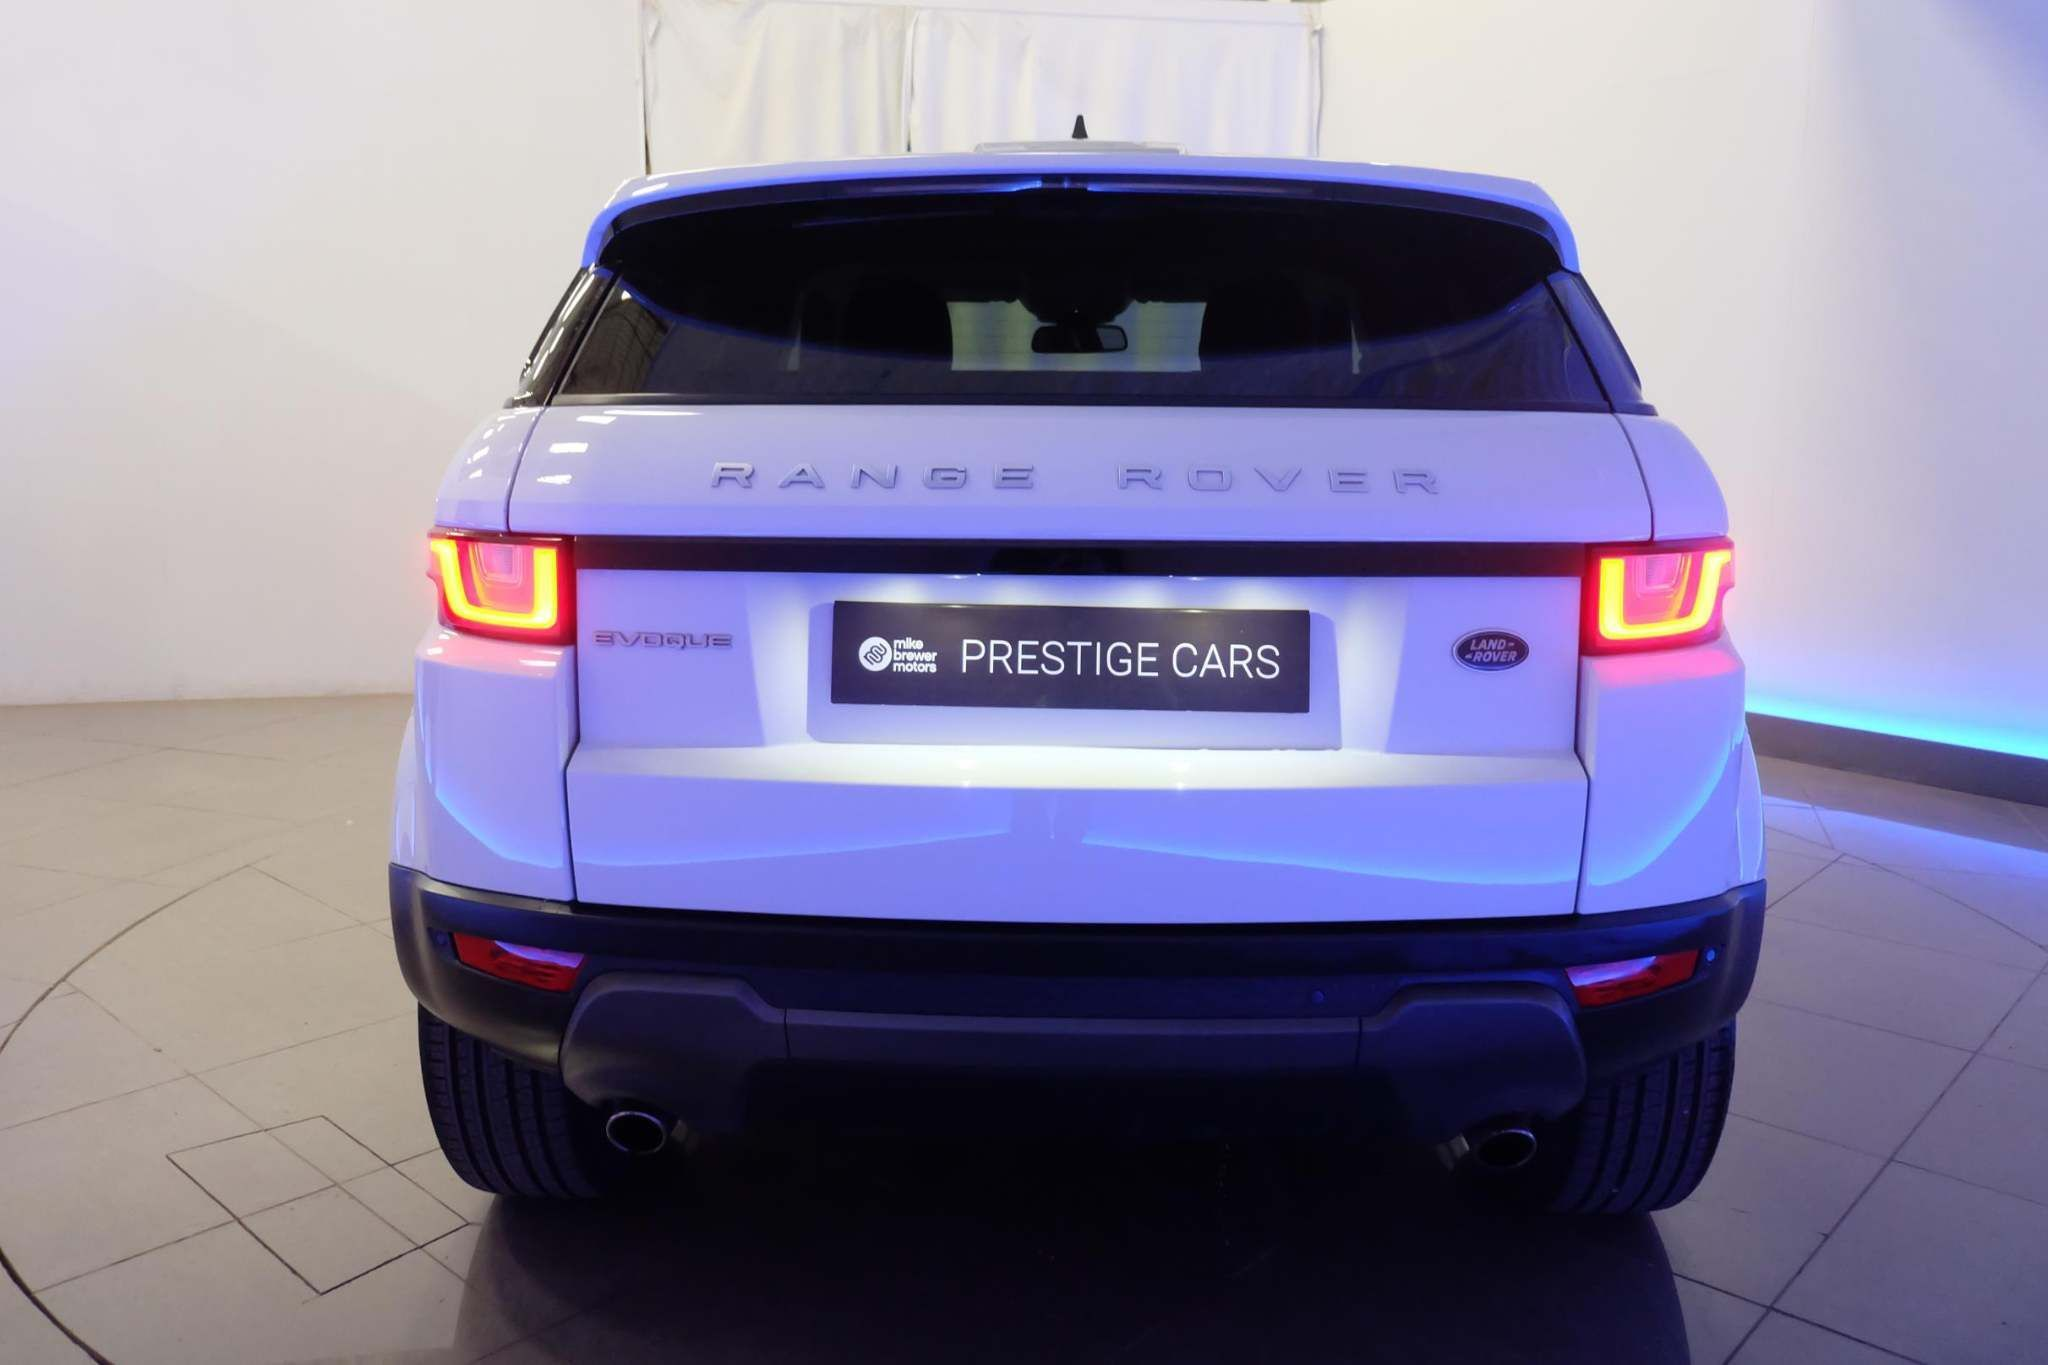 Used Land Rover Range Rover Evoque 2.0 Td4 Se Tech Auto 4wd (s/s) 5dr